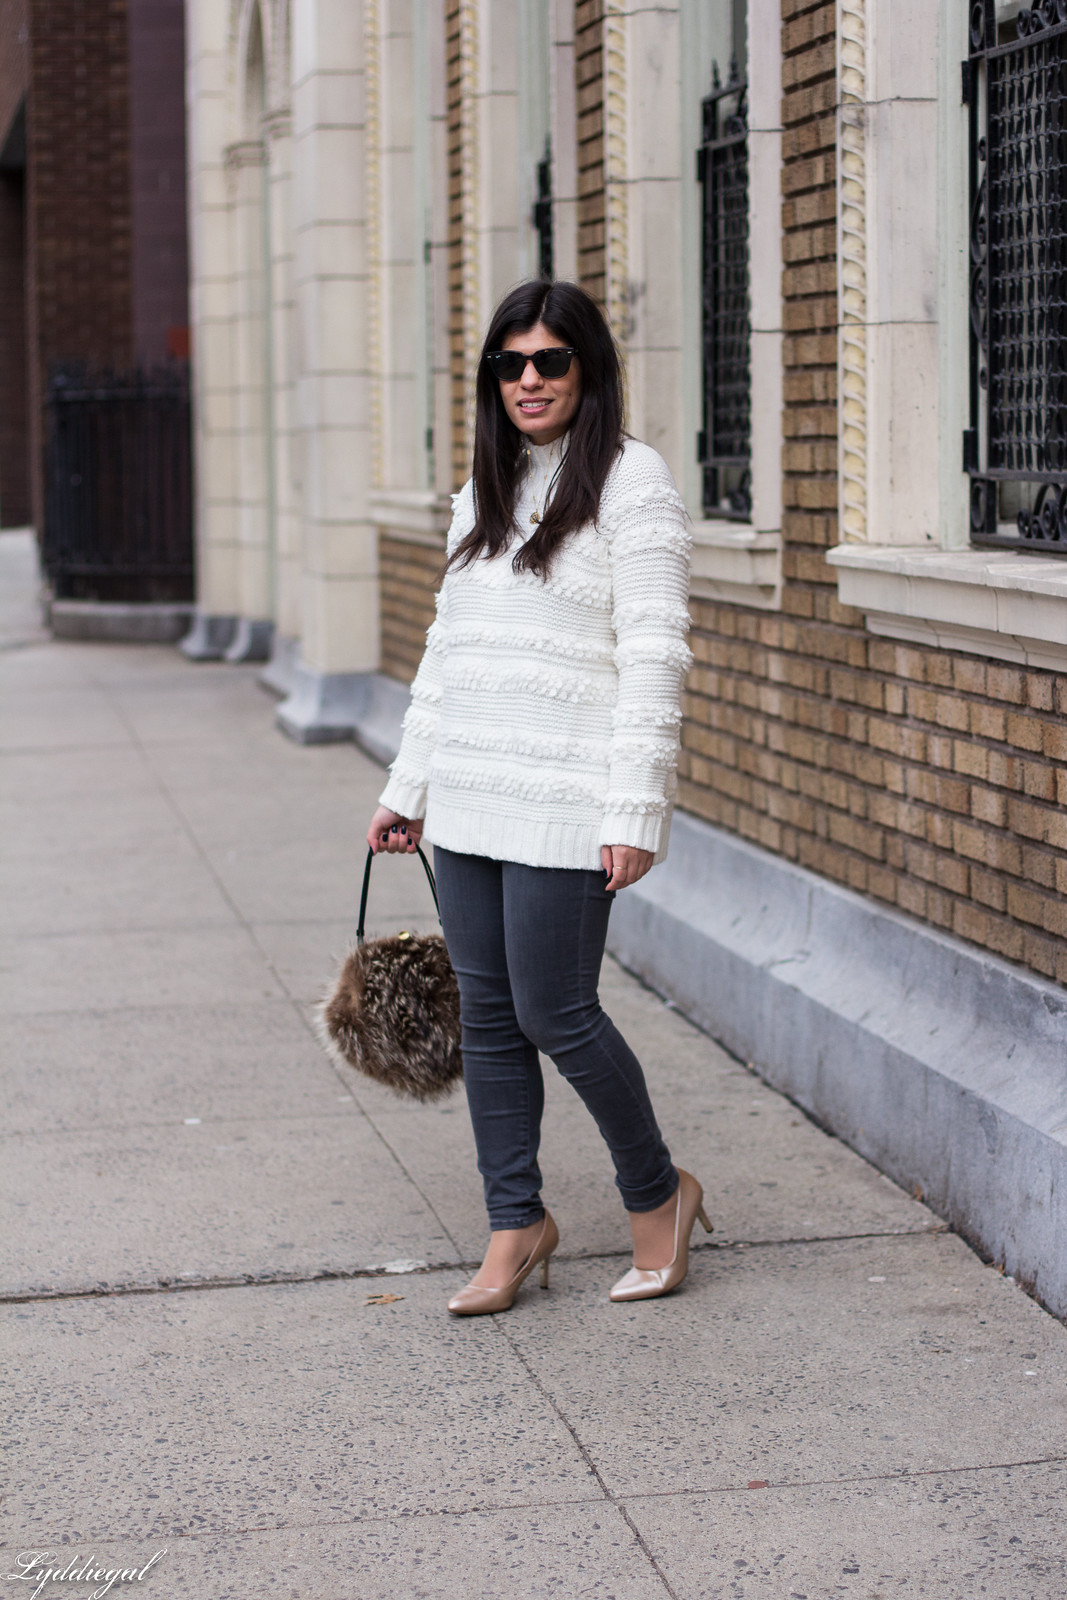 Loft Snowbird Sweater, Grey Jeans, Fur Bag, Nude Pumps Outfit-15.jpg